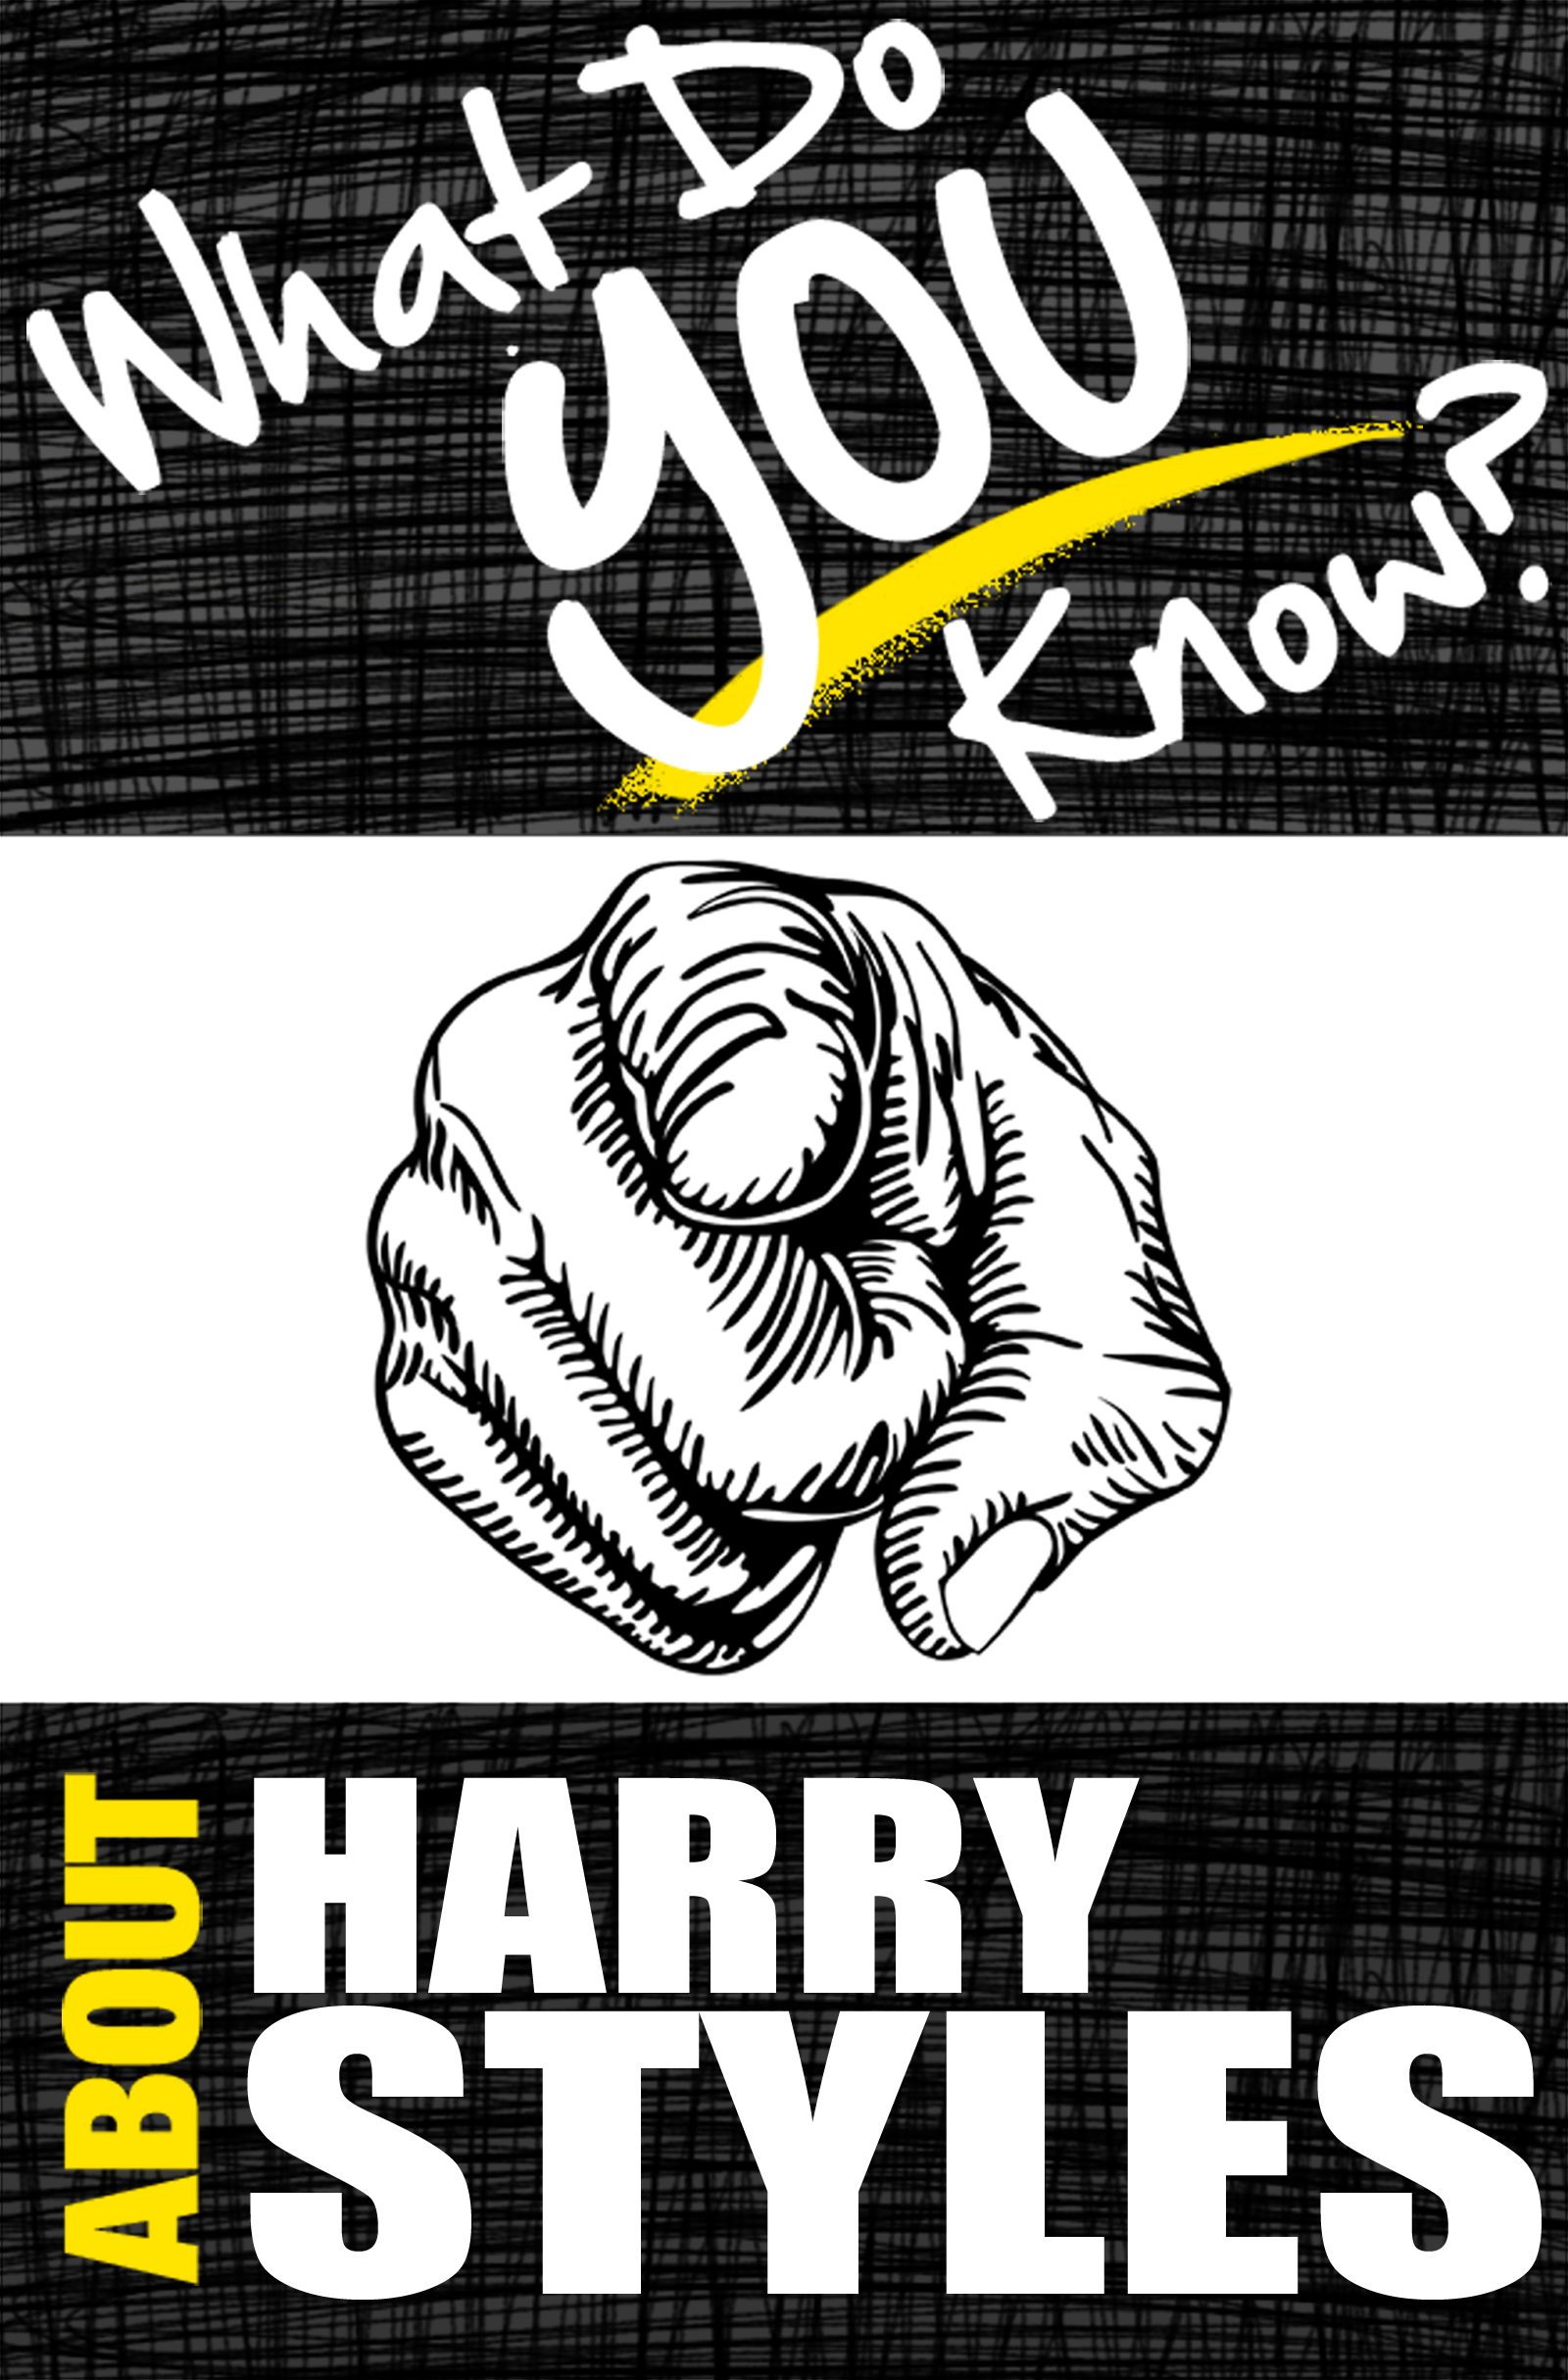 What Do You Know About Harry Styles? - The Unauthorized Trivia Quiz Game Book About Harry Style Facts By: T.K. Parker